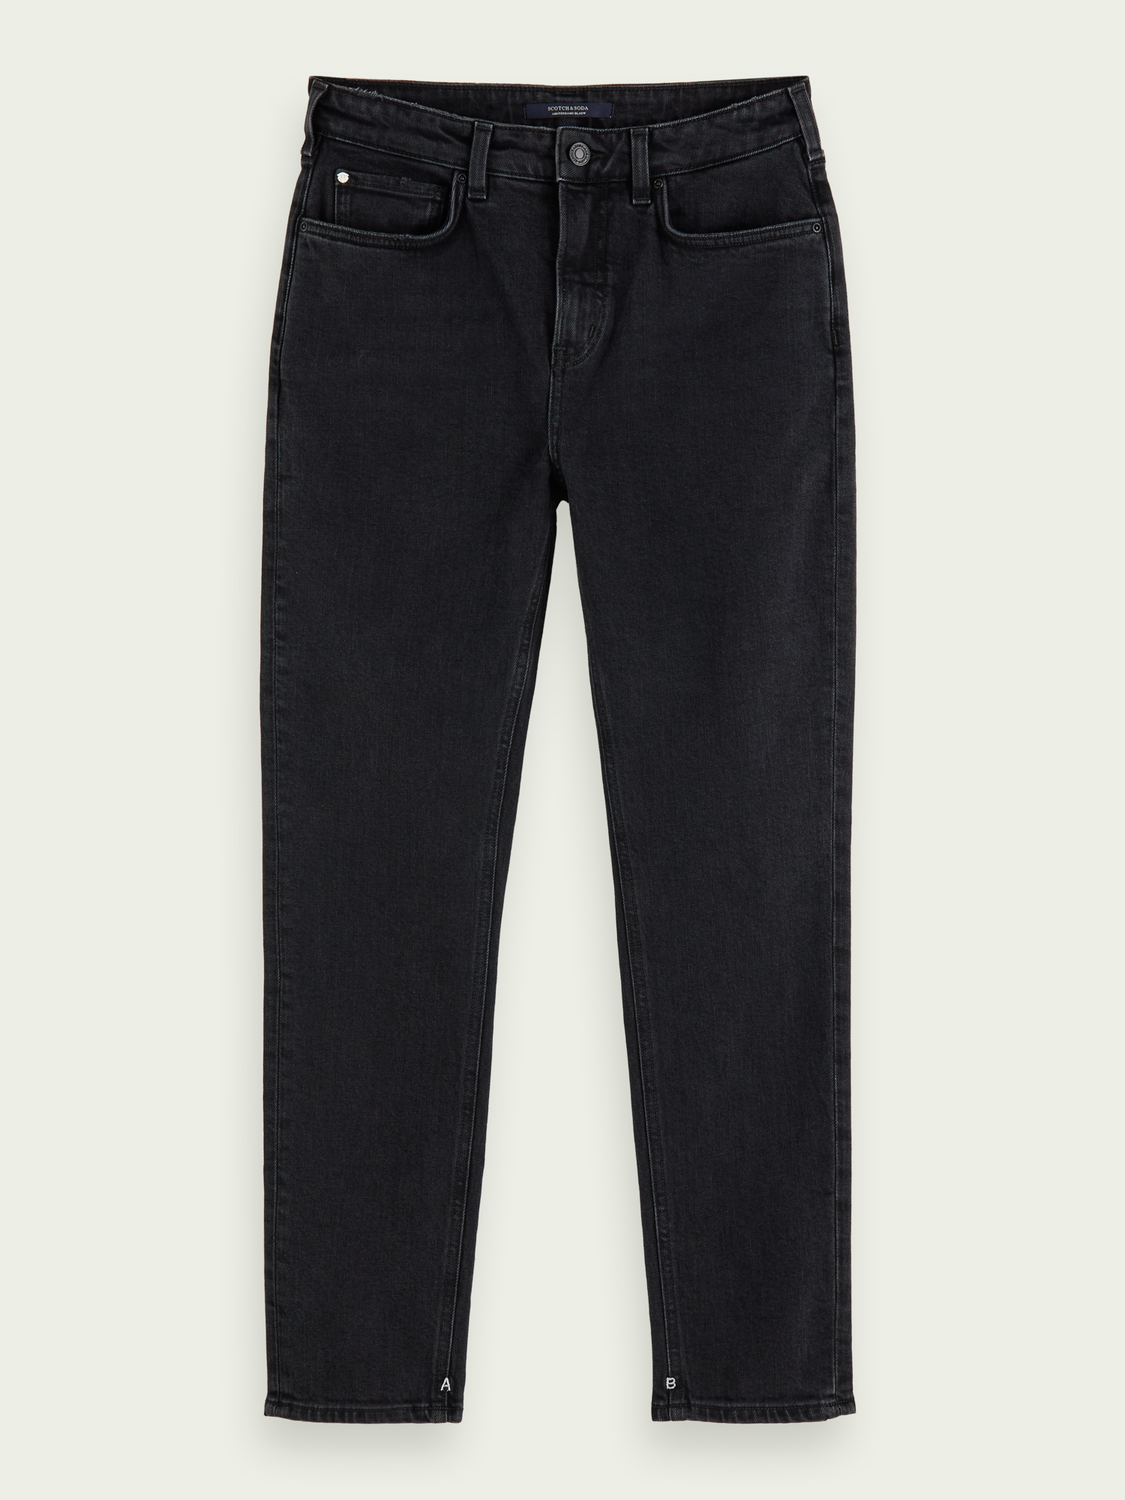 Dames High Five - Black Butter   High-rise slim fit jeans